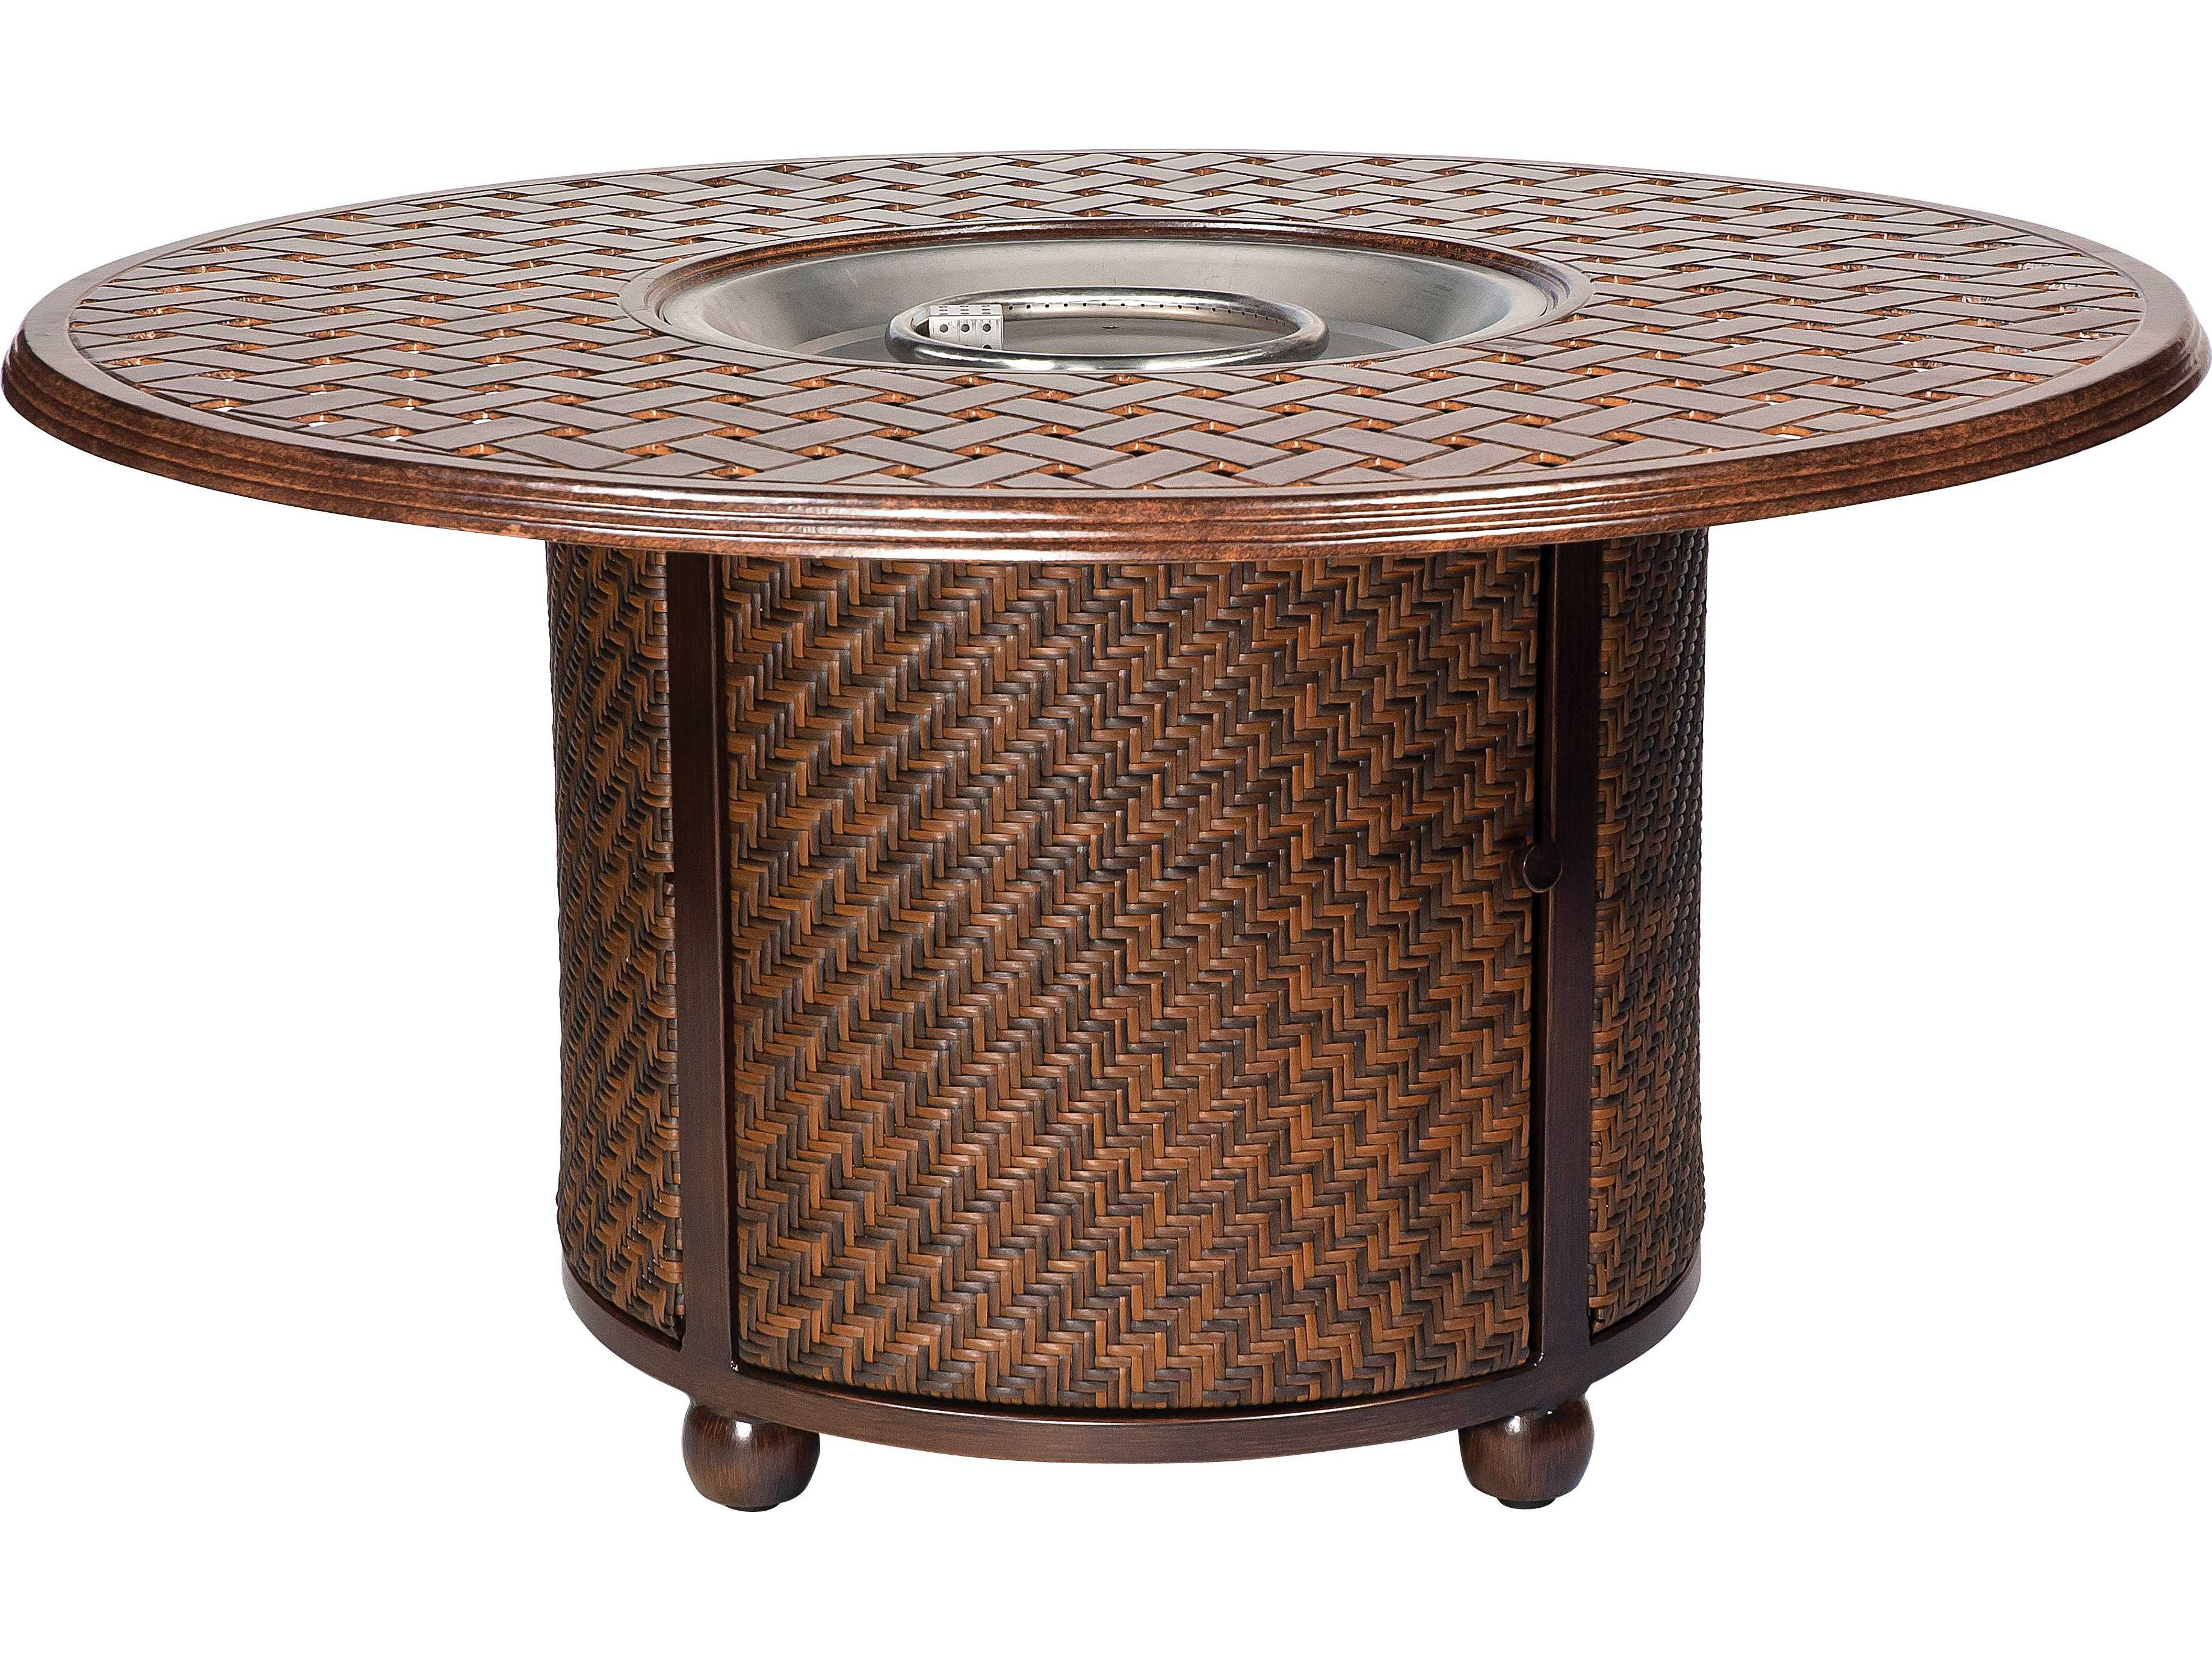 Small Round Rattan Table Outdoor Patio Fire Pit Tables Patioliving